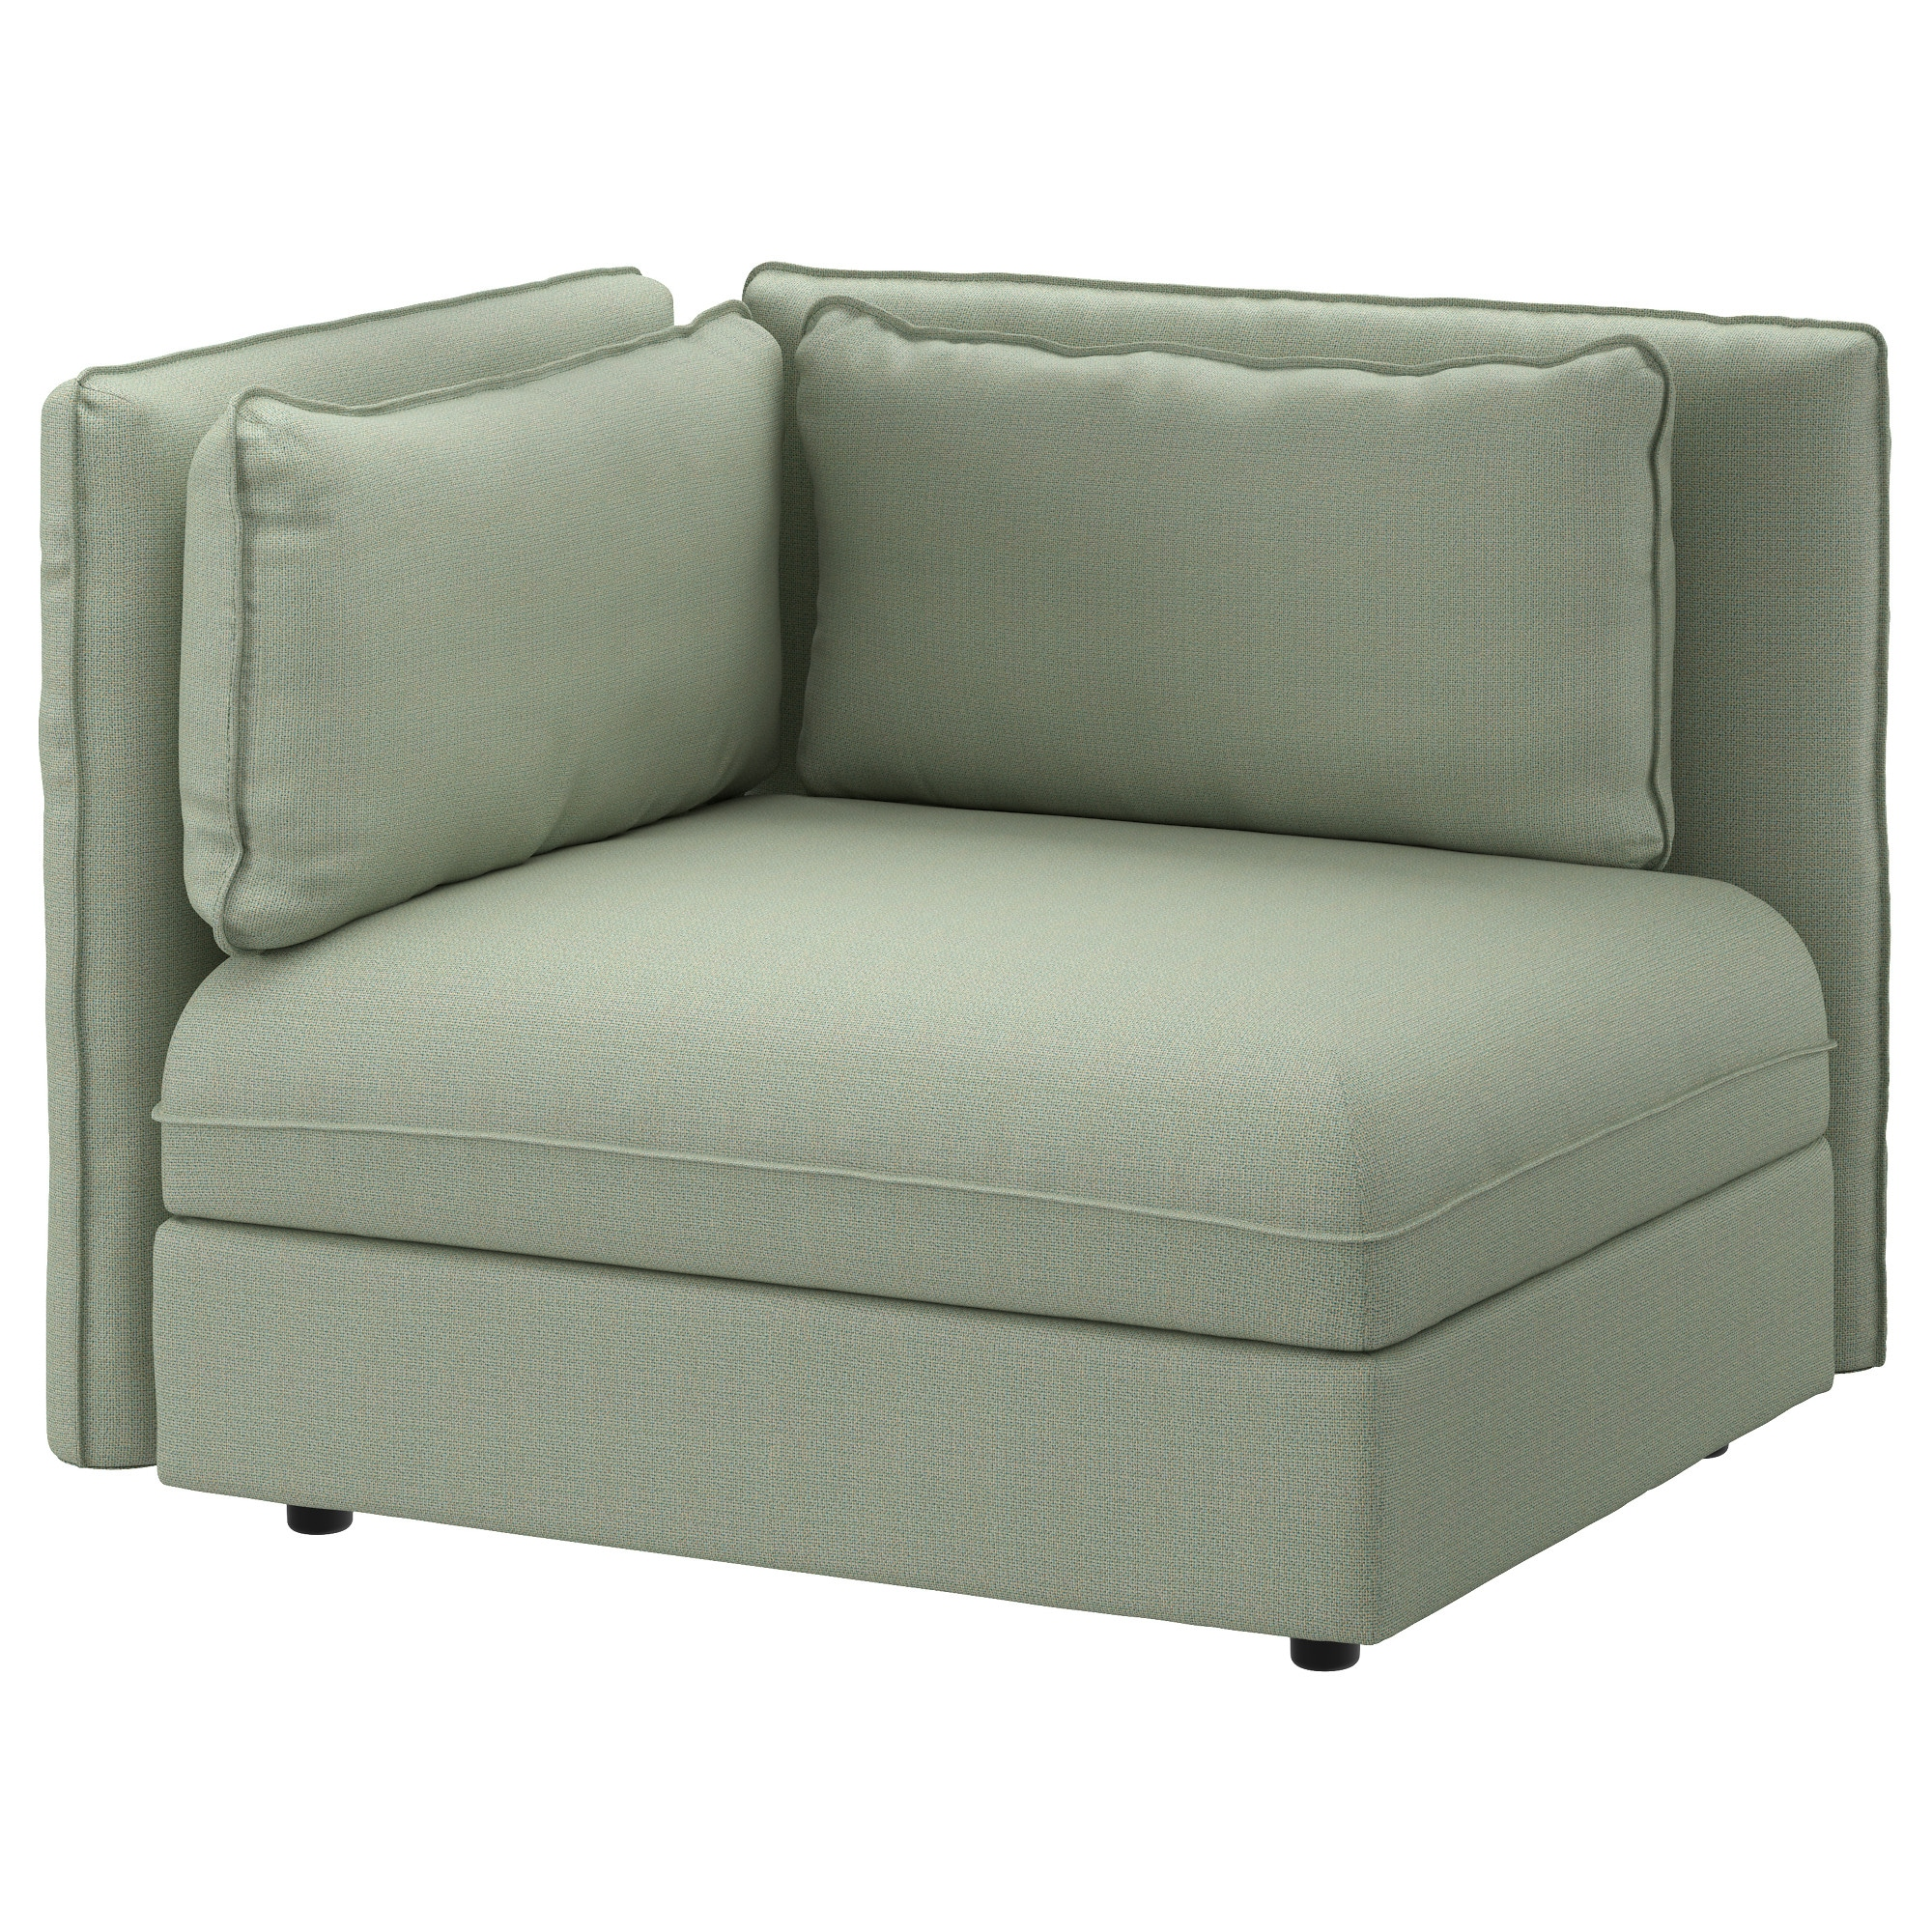 VALLENTUNA Sectional, 1 Seat, Hillared Green